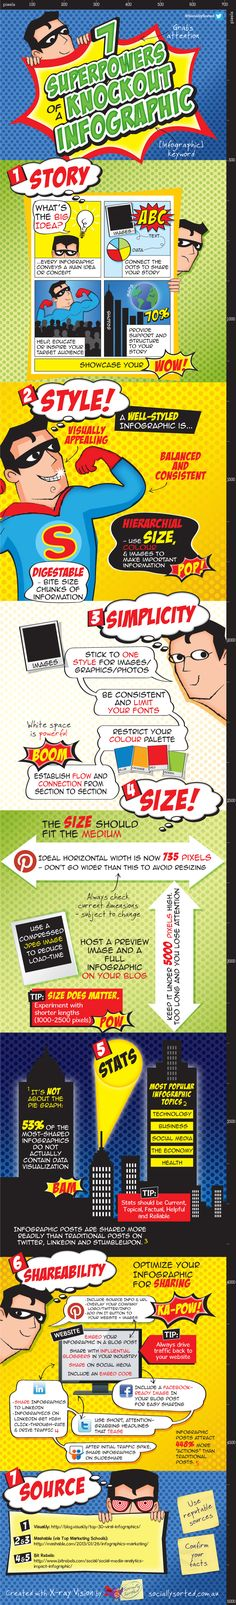 7 Superpowers of a Knockout Infographic - How to Get More Shares and Drive Traffic